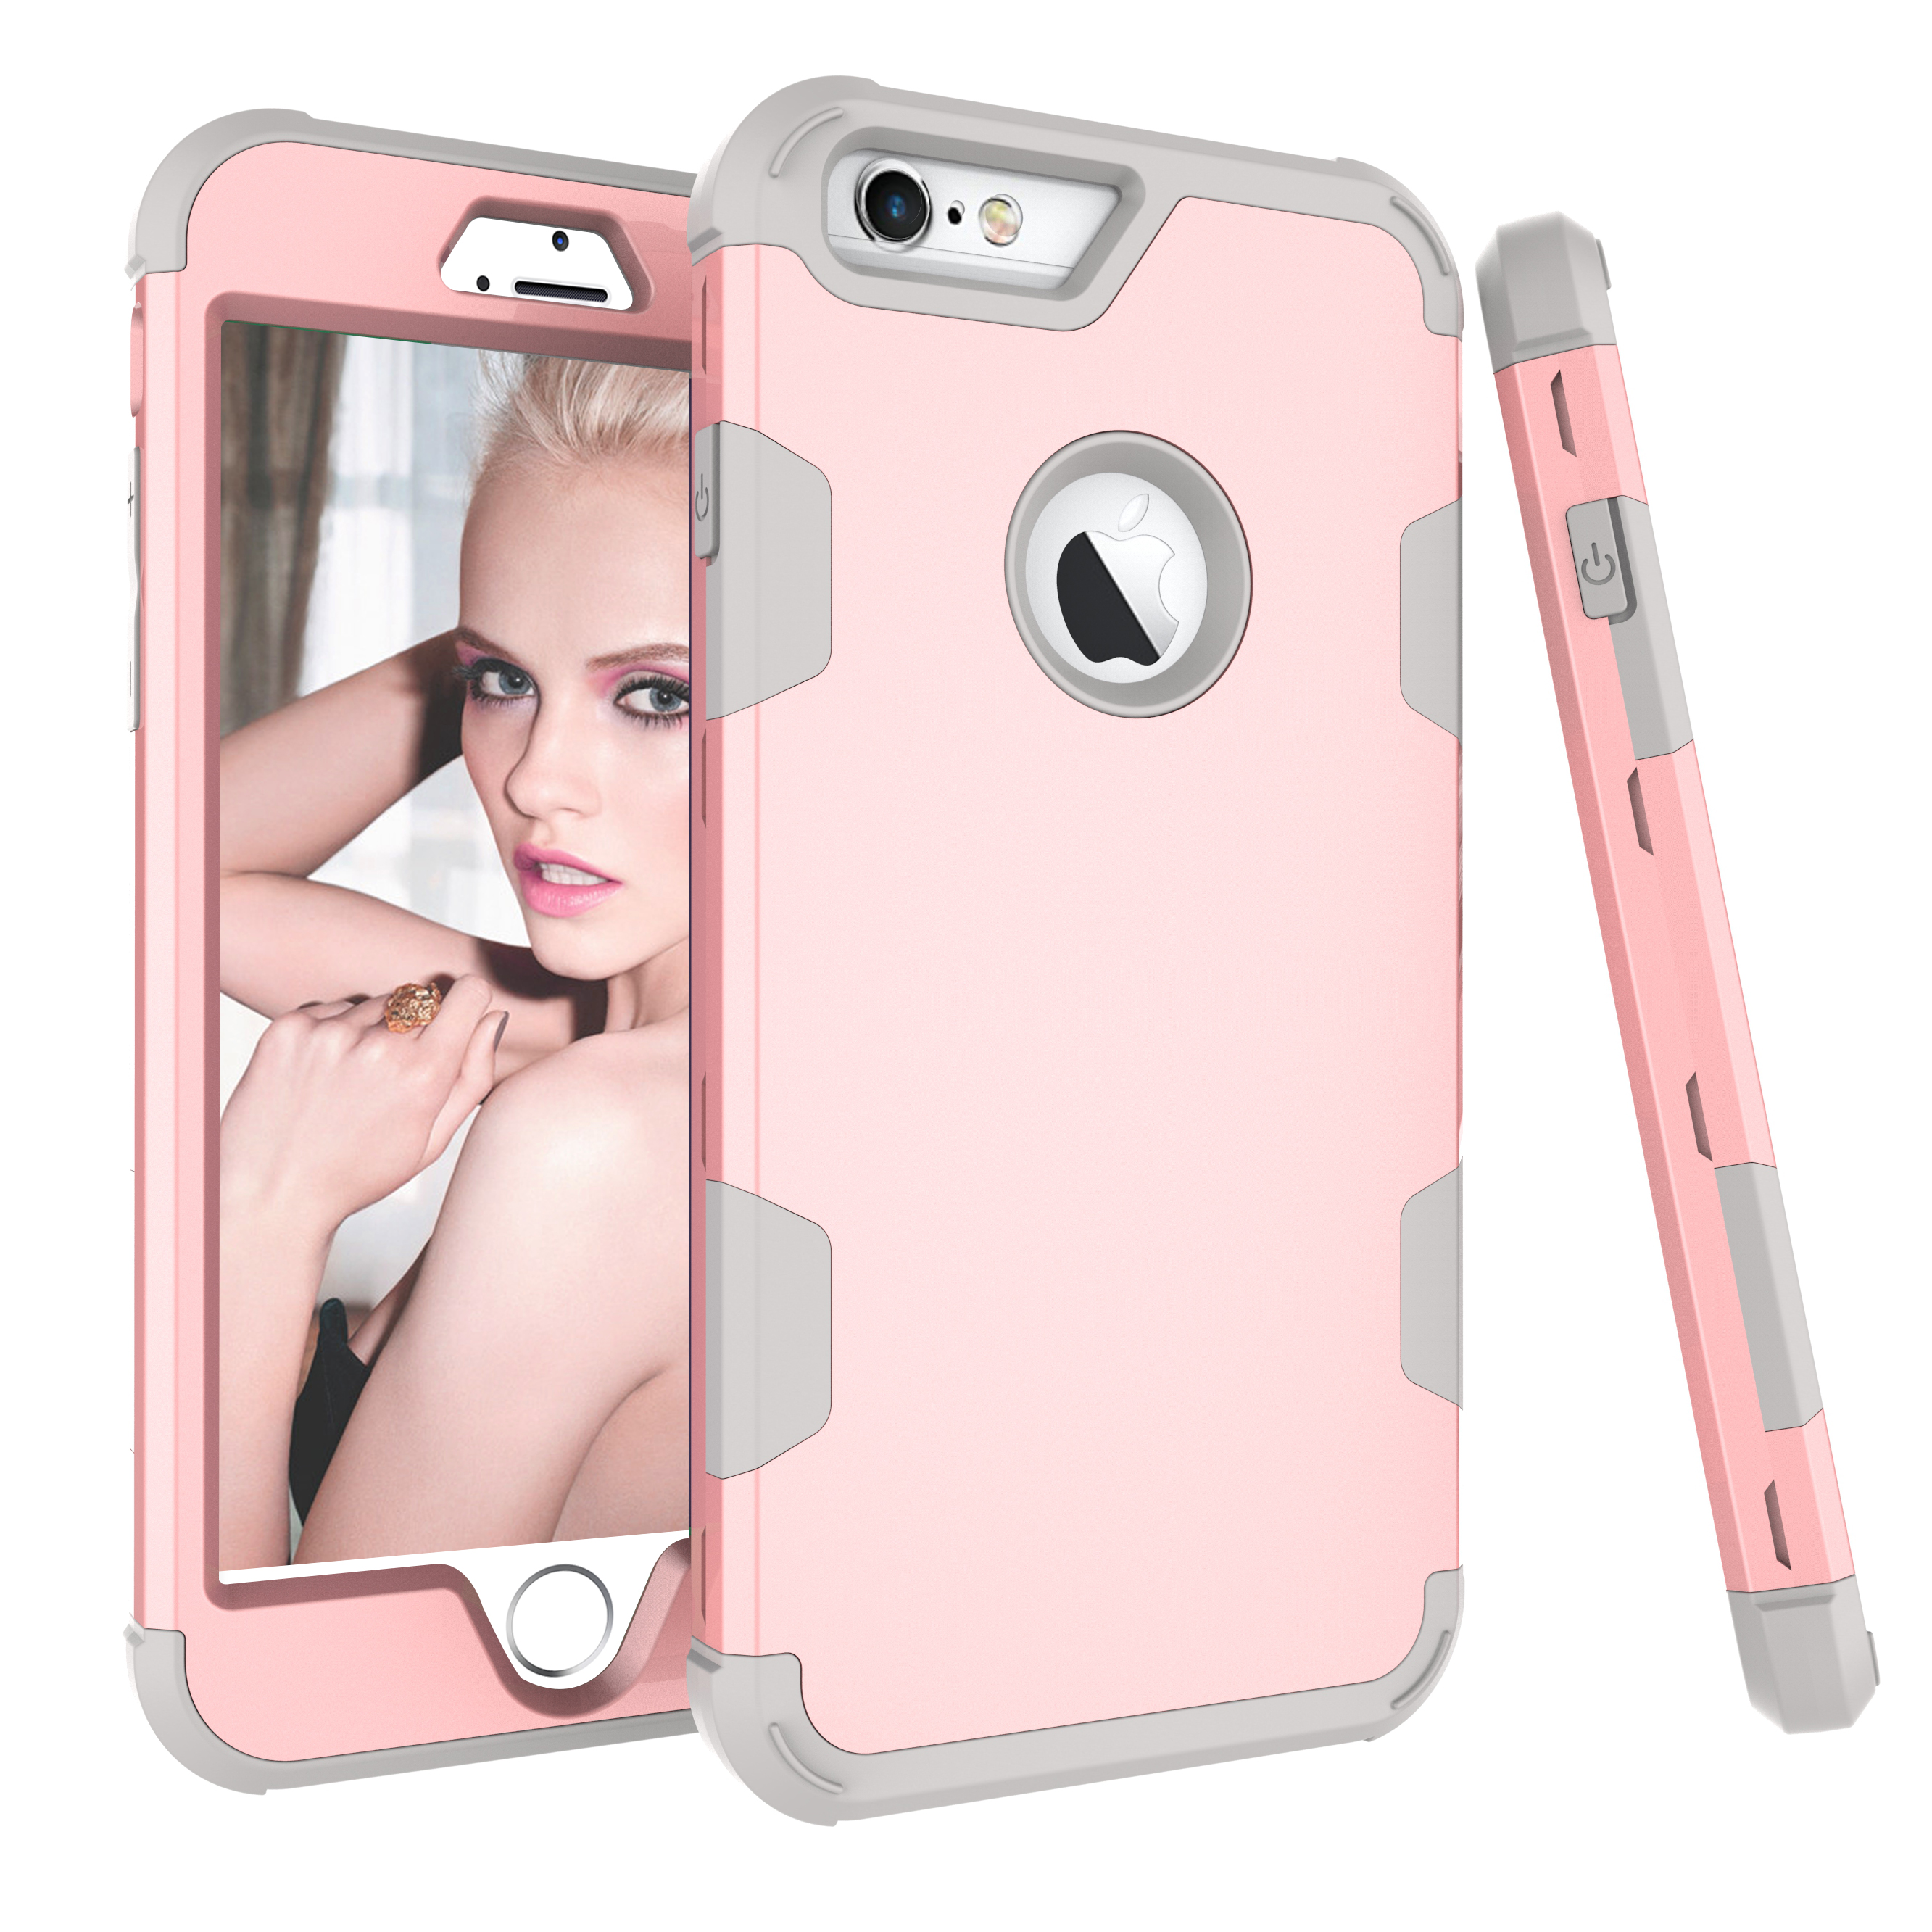 For iPhone 6 plus/6S plus PC+ Silicone 2 in 1 Hit Color Tri-proof Shockproof Dustproof Anti-fall Protective Cover Back Case Rose gold + gray